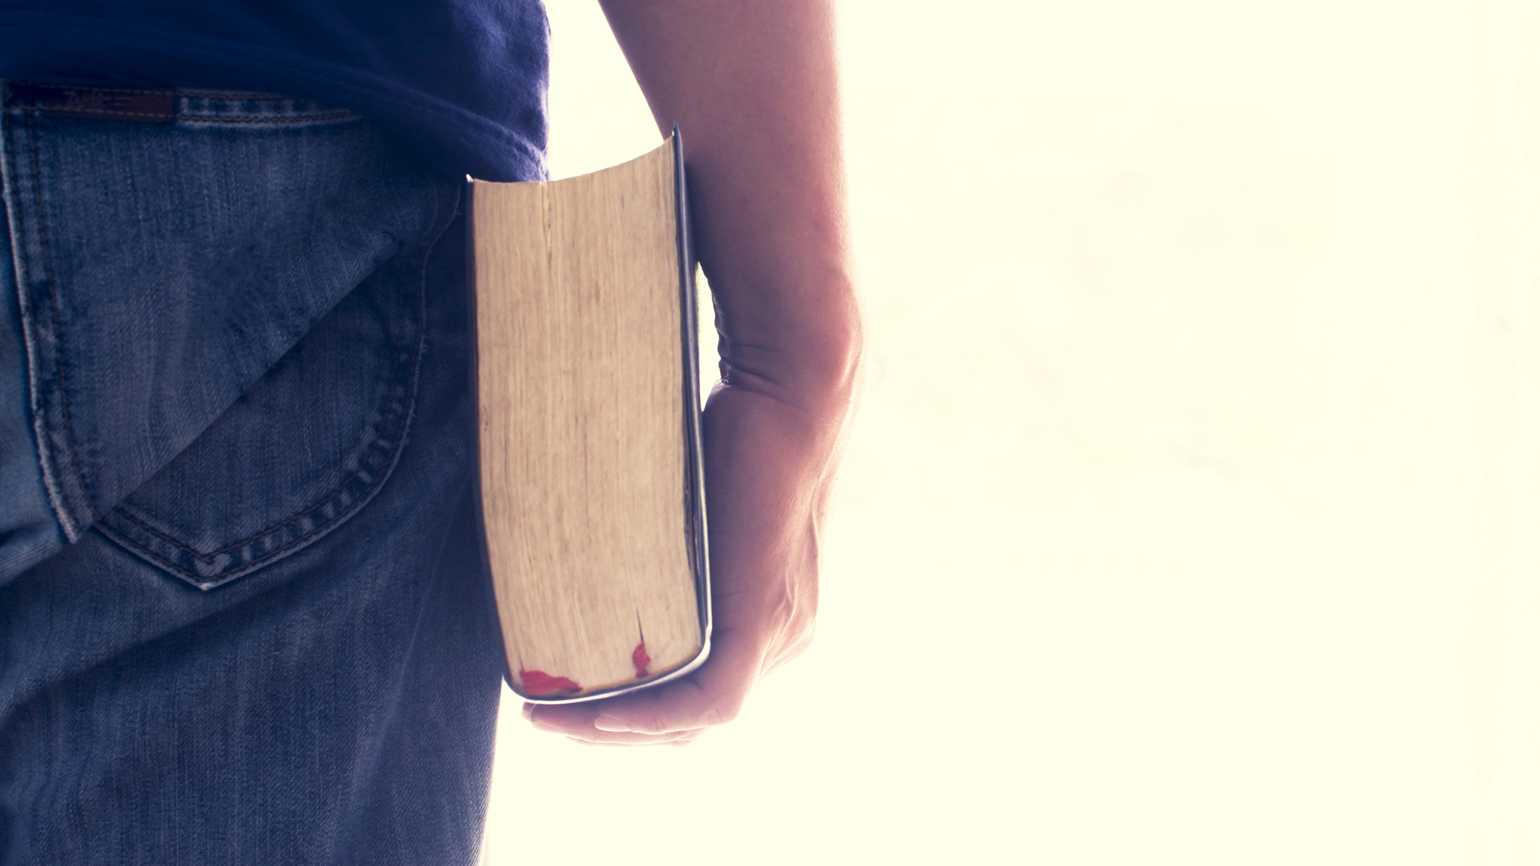 A man holding a Bible in his hand.